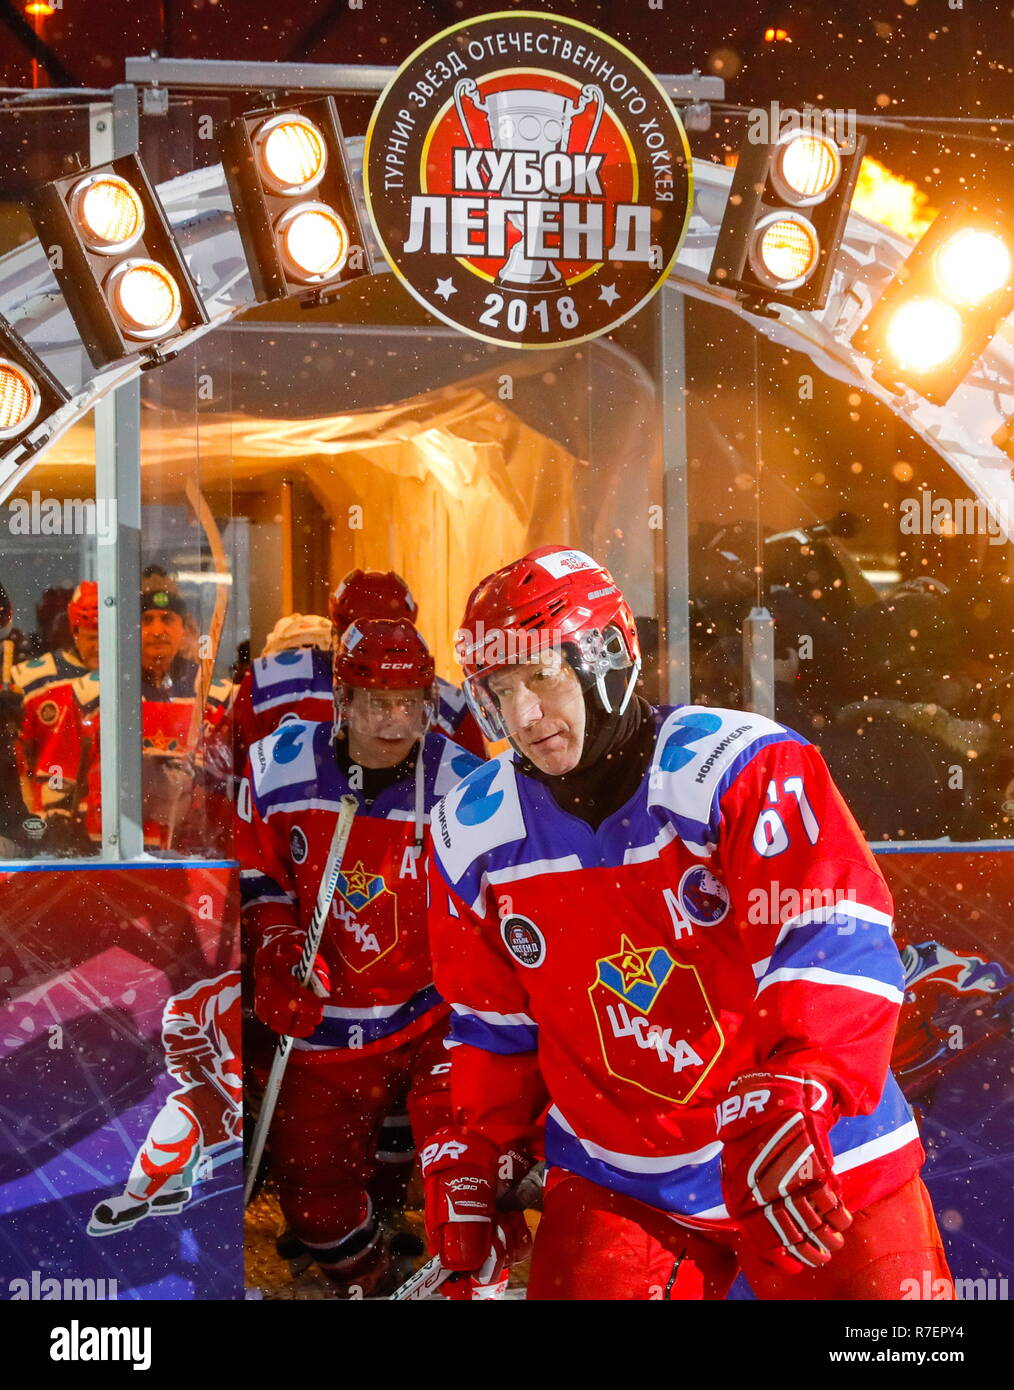 Moscow, Russia. 09th Dec, 2018. MMC Norilsk Nickel President and Board Chairman Vladimir Potanin (R) and World Legends Hockey League President Pavel Bure of the CSKA team during the 5th Legends Cup ice hockey tournament at the Luzhki Club ice rink; held for retired senior ice hockey players, this year's tournament marks the 100th birth anniversary of Soviet ice hockey player and coach Anatoly Tarasov (1918-1995). Mikhail Japaridze/TASS Credit: ITAR-TASS News Agency/Alamy Live News - Stock Image